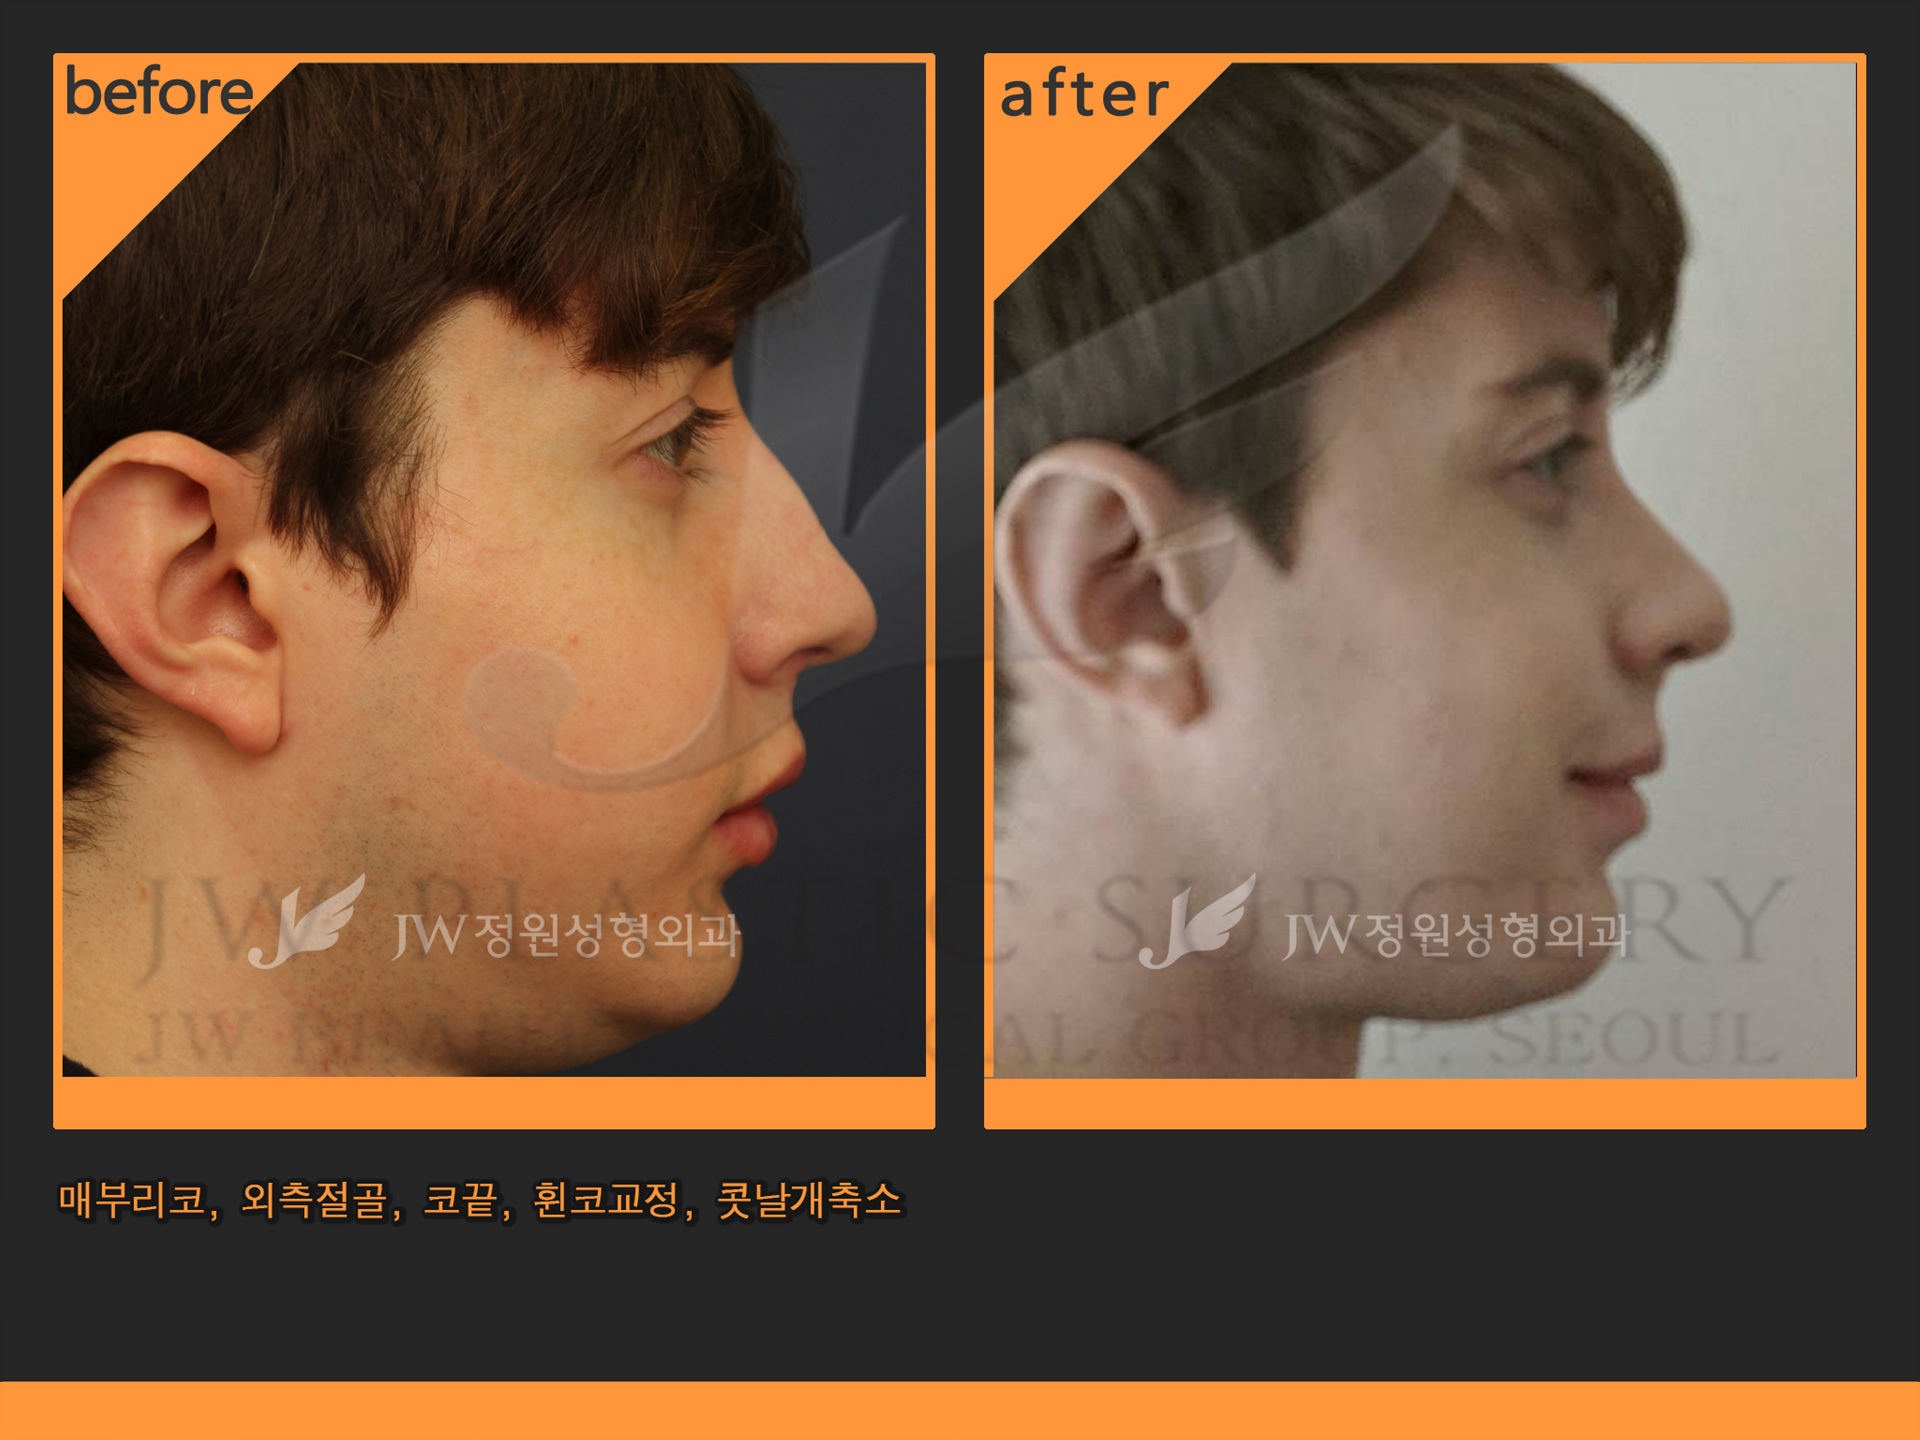 jw plastic surgery photo - 1